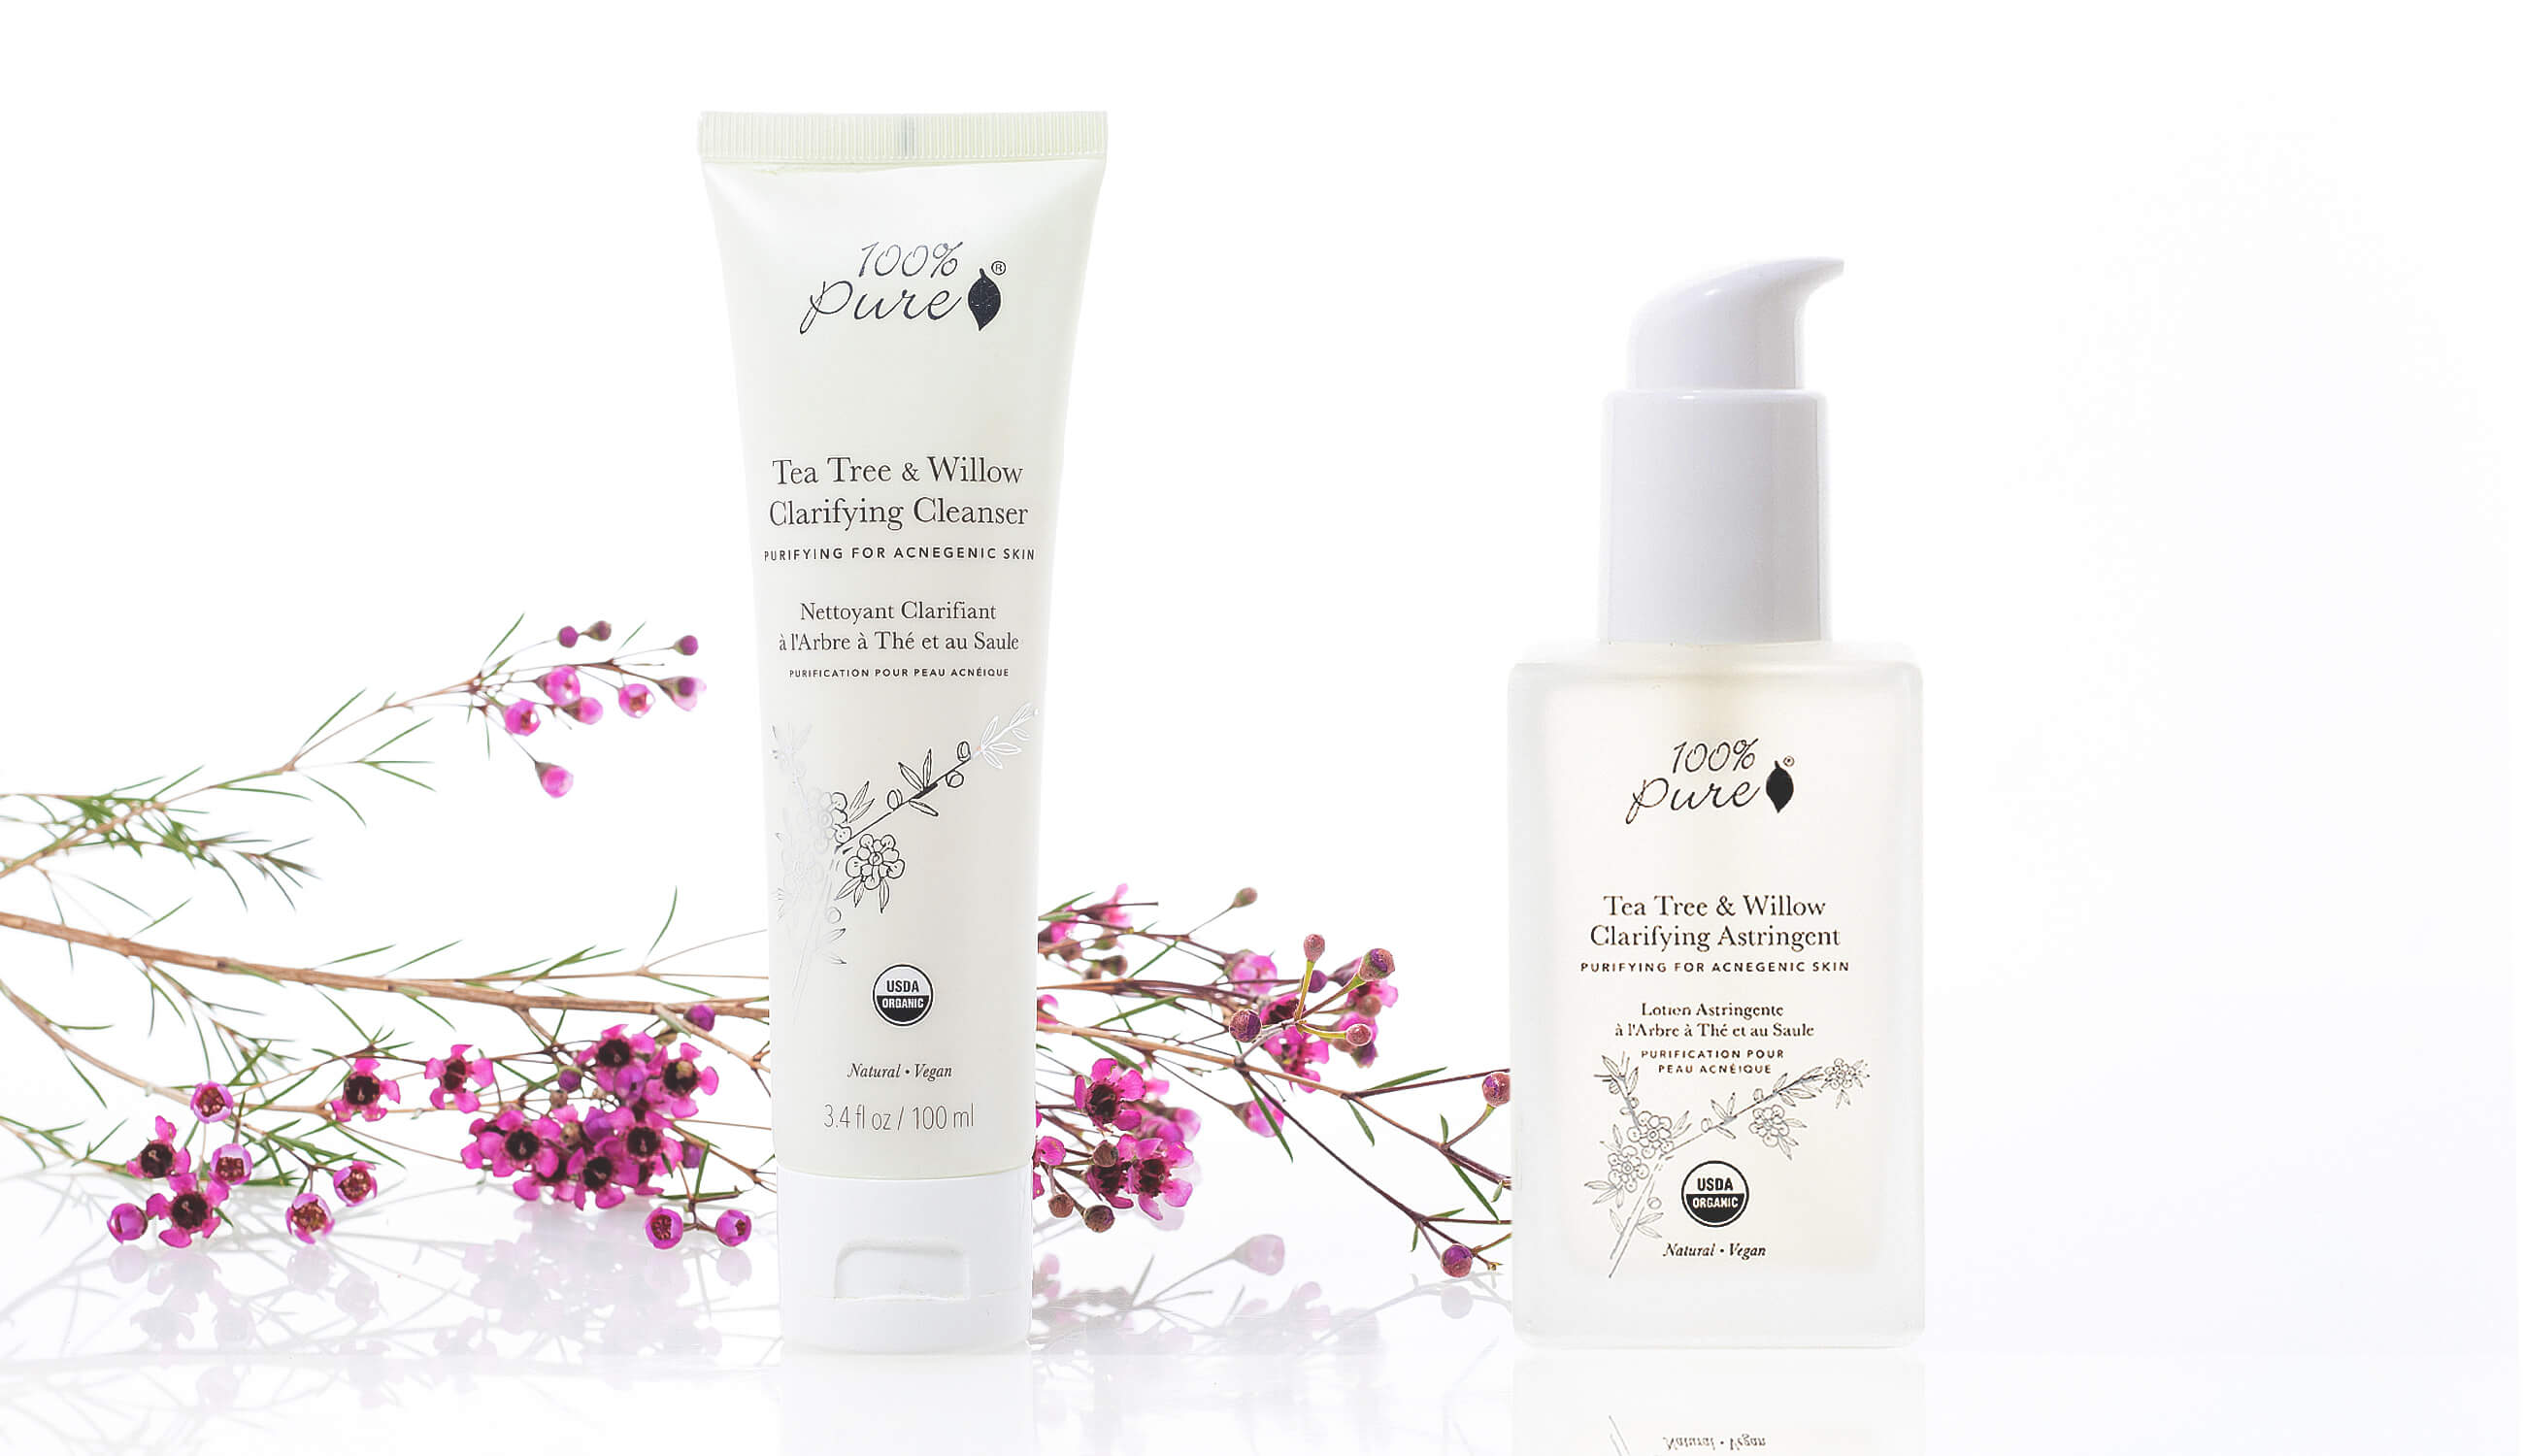 teatreewillowproducts